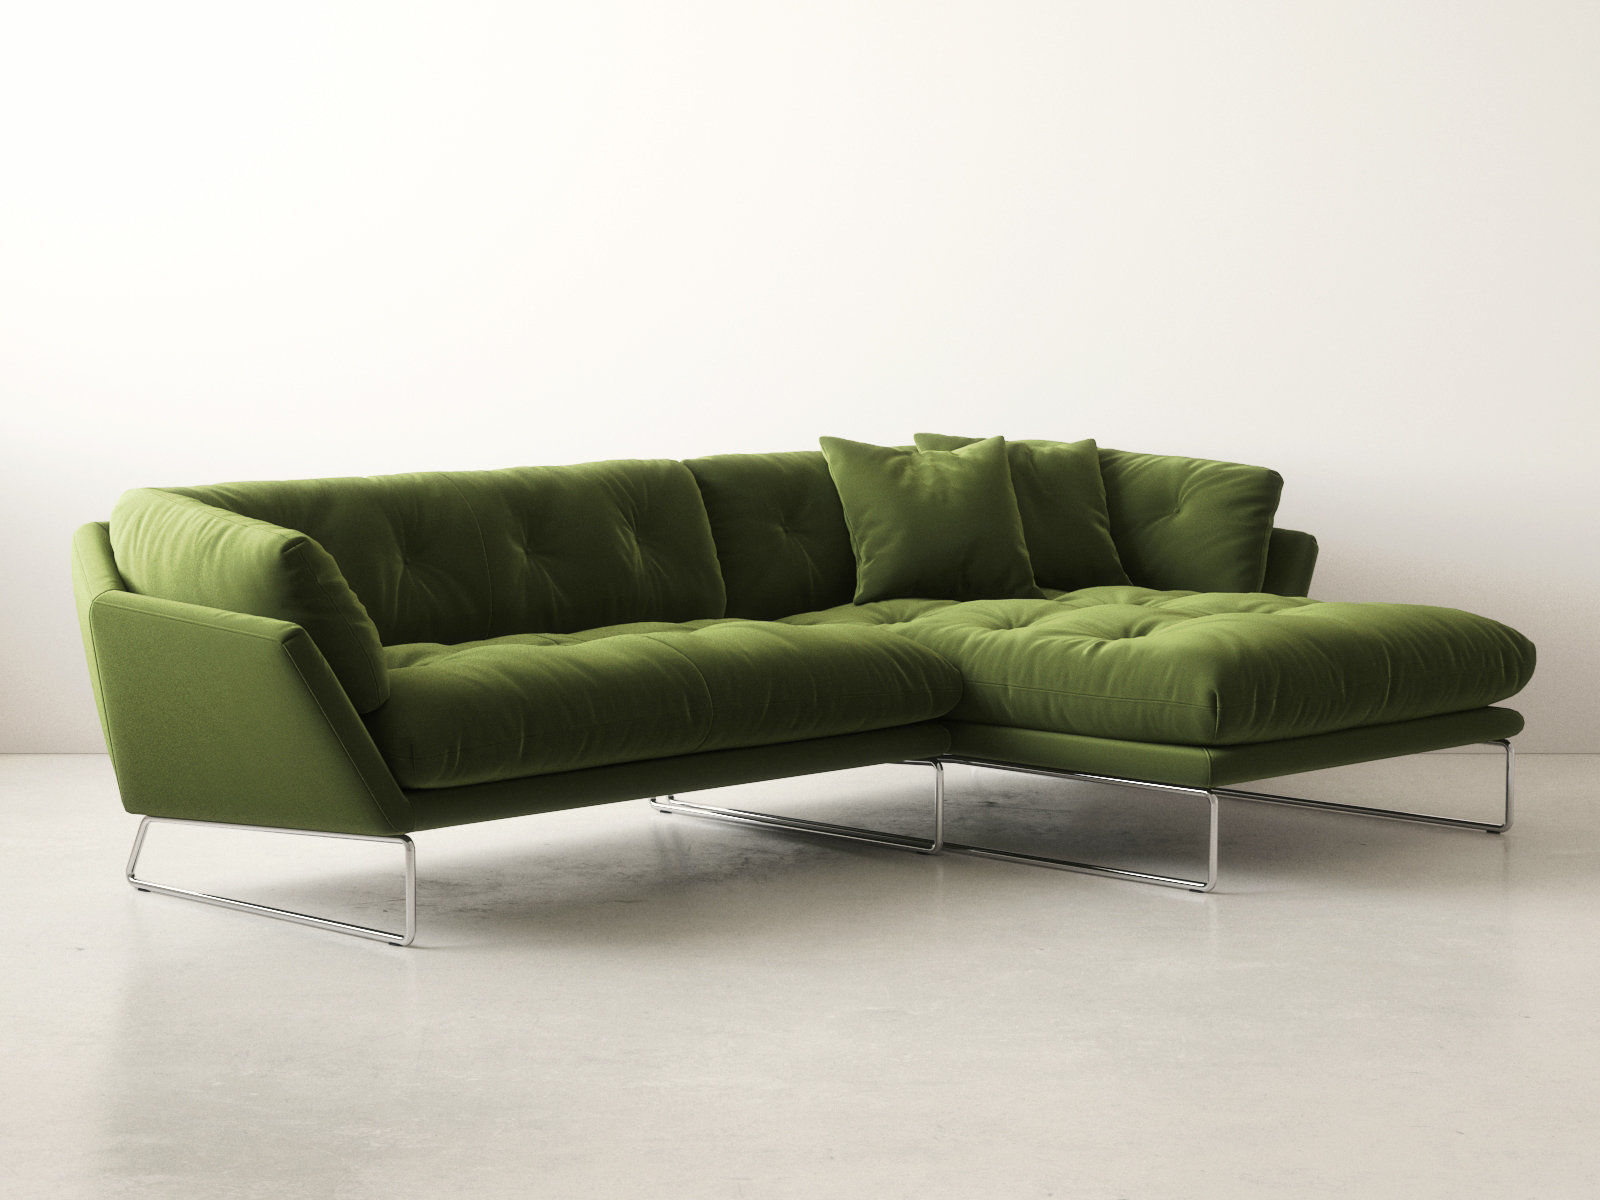 corner sofa bed new york com us 2 model desain rumah